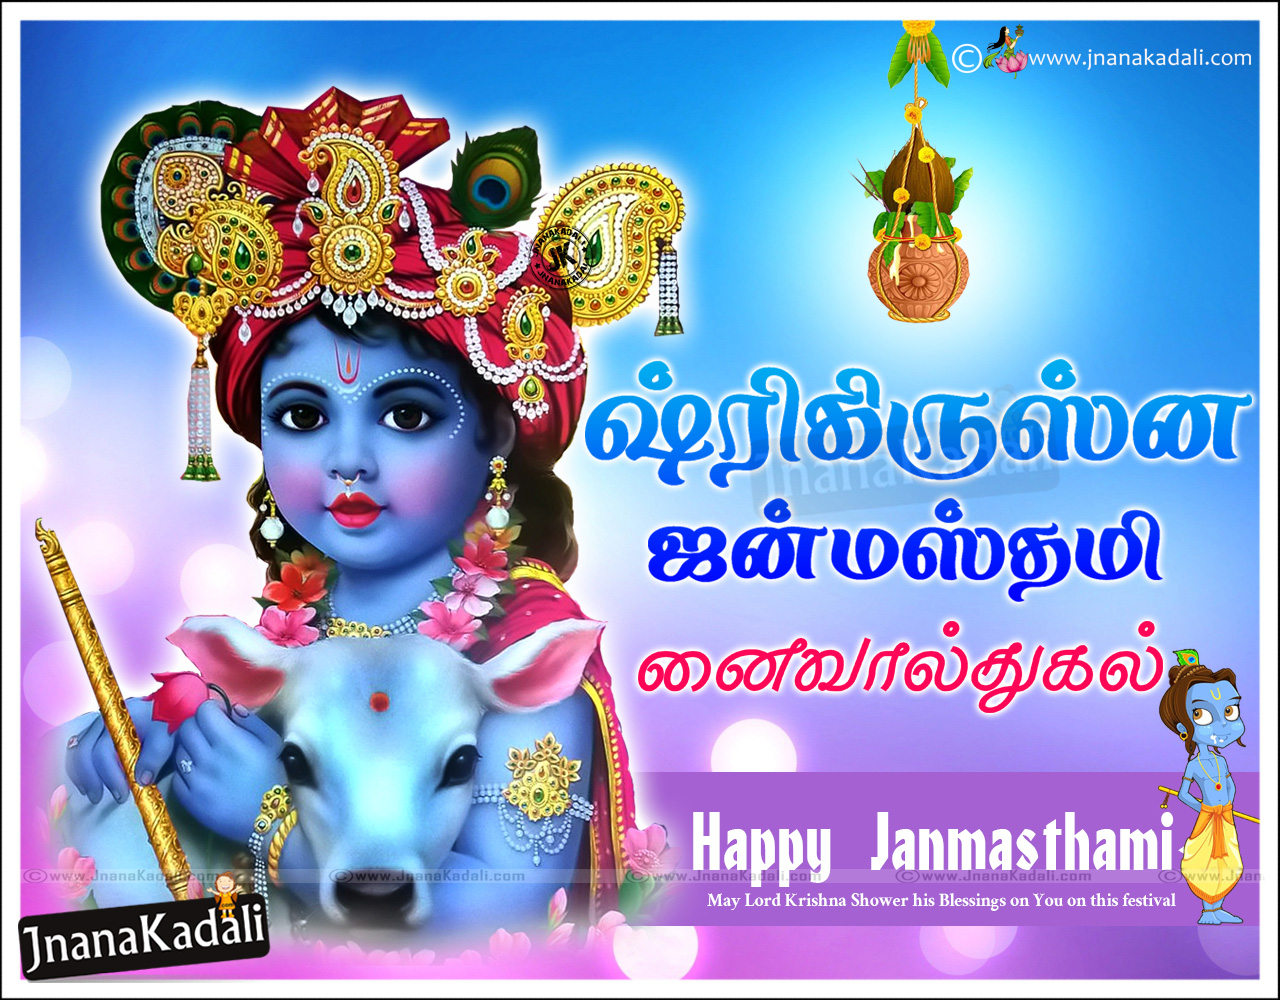 Here Is Krishna Bhagwan Janmashtami Wishes And Greeting Ecards And Mobile Sms Messages Herelord